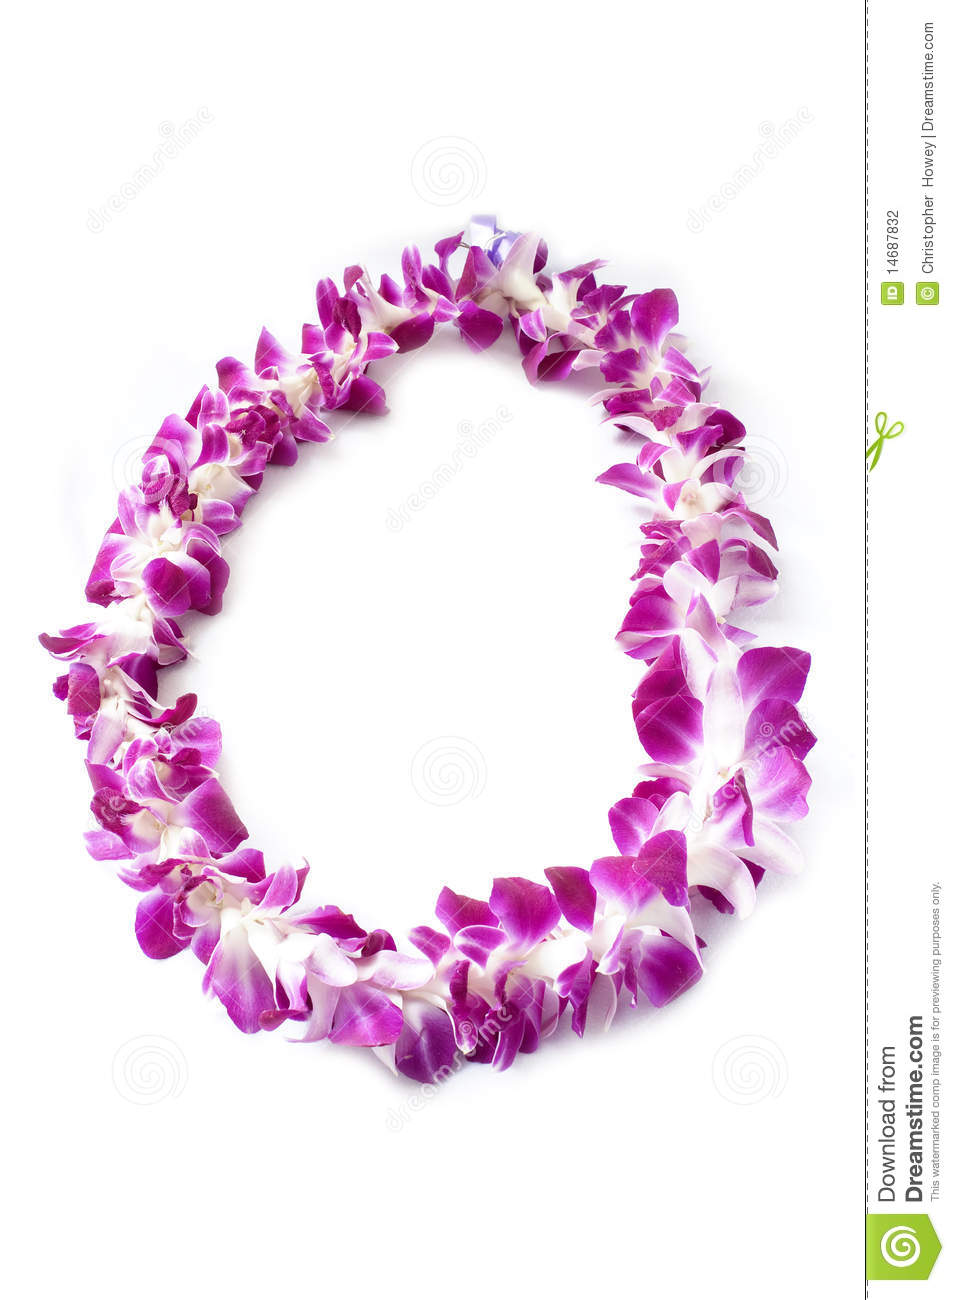 Hawaiian lei made of orchid blooms stock photo image of exotic hawaiian lei made of orchid blooms izmirmasajfo Images